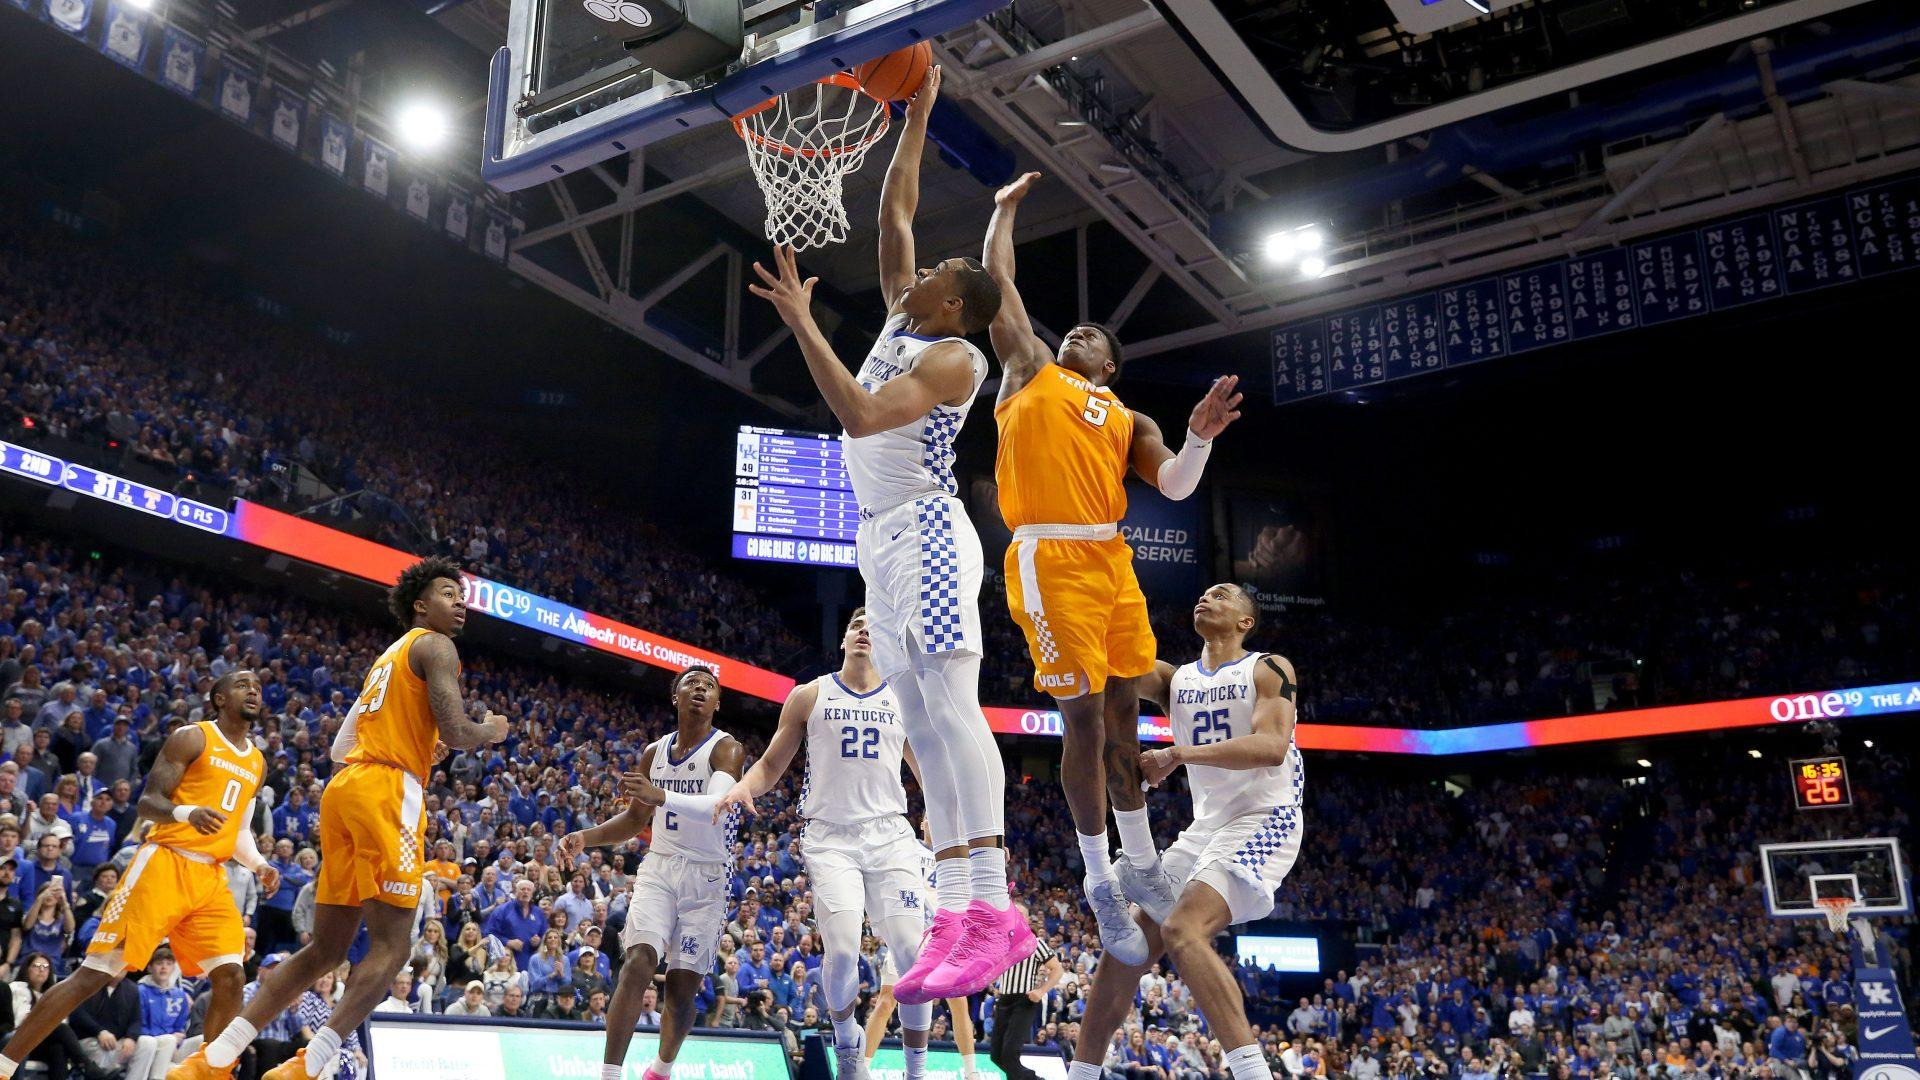 NBC Sports Top 25: Kentucky beats Tennessee as injuries abound